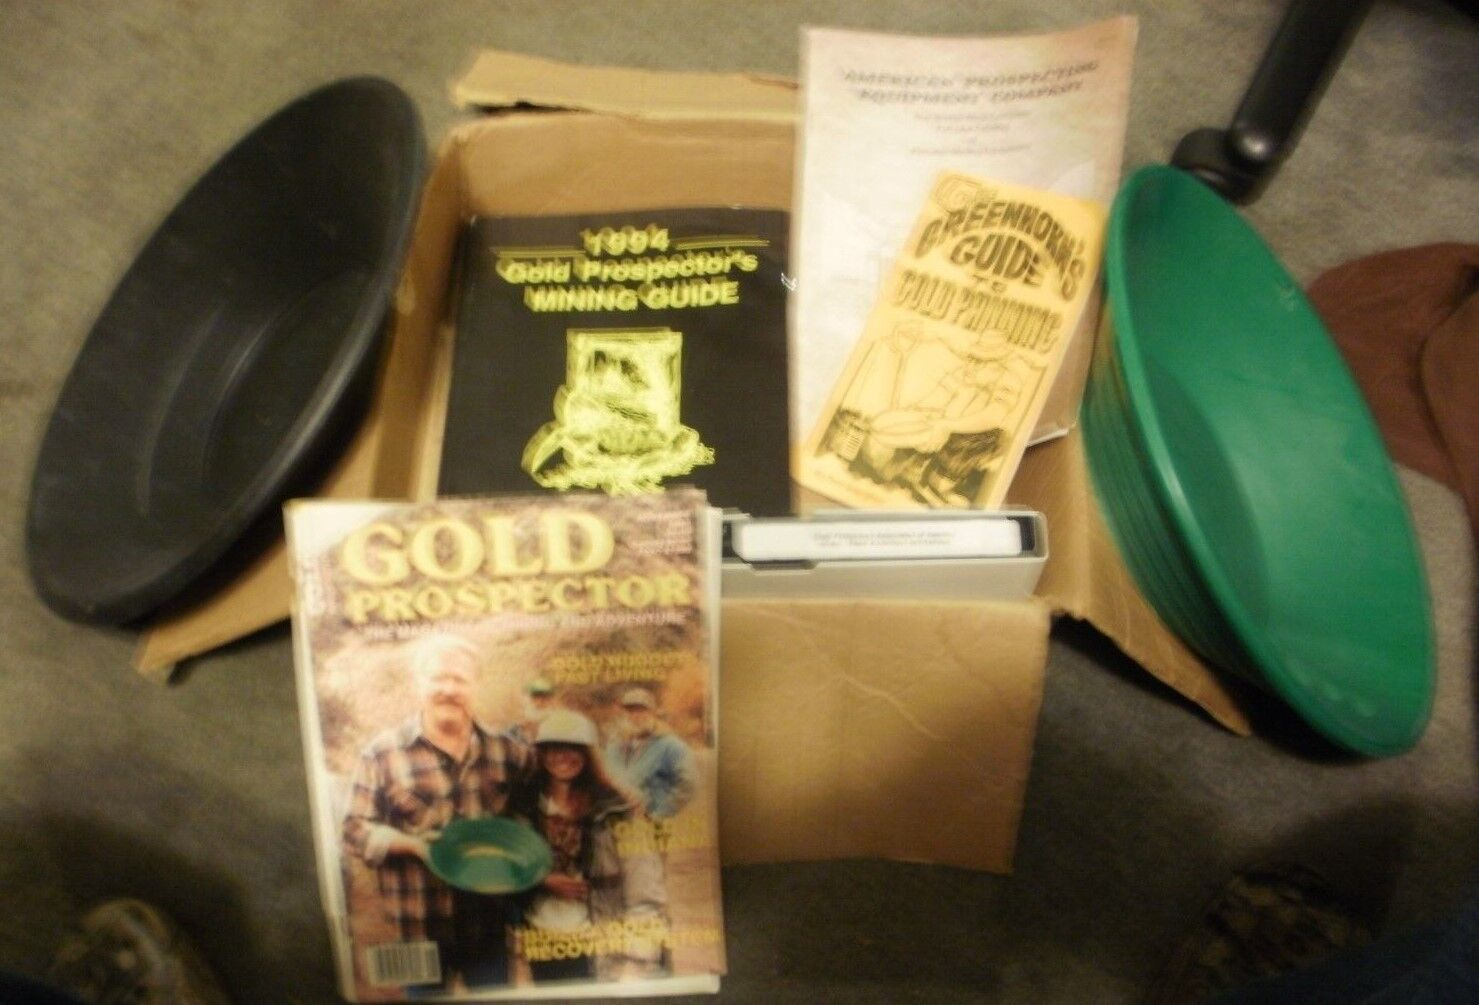 Black Gold Pan, Green Gold Pan, 1994 Gold Prospector Mining Guide, Video & More!